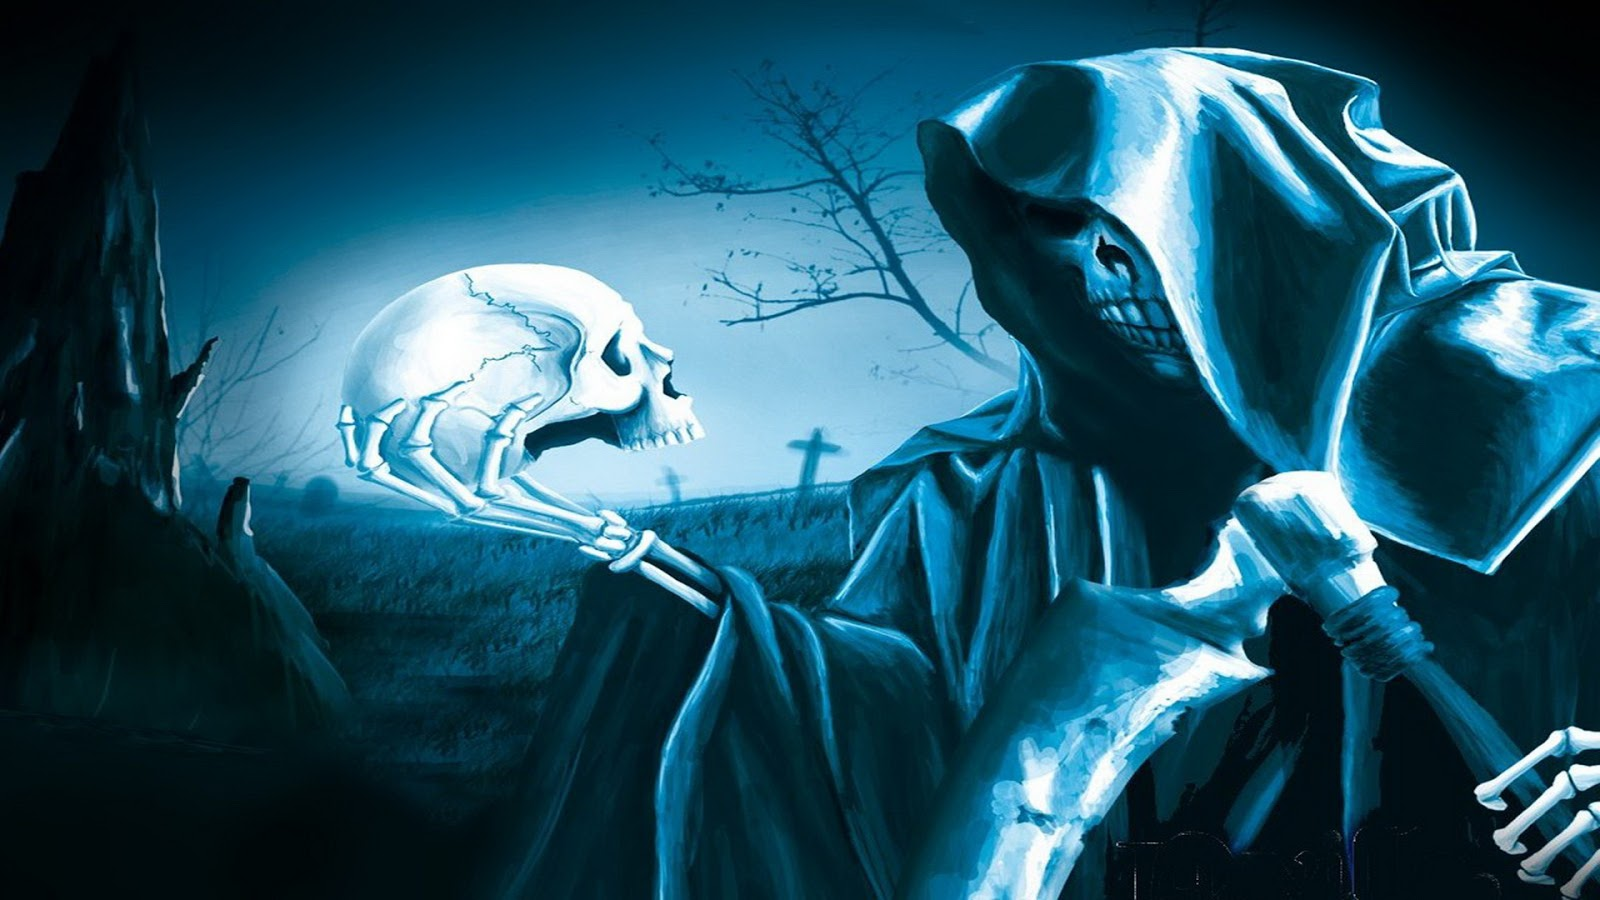 HD WAllppaers Skull HD Wallpaper 1080p 1600x900